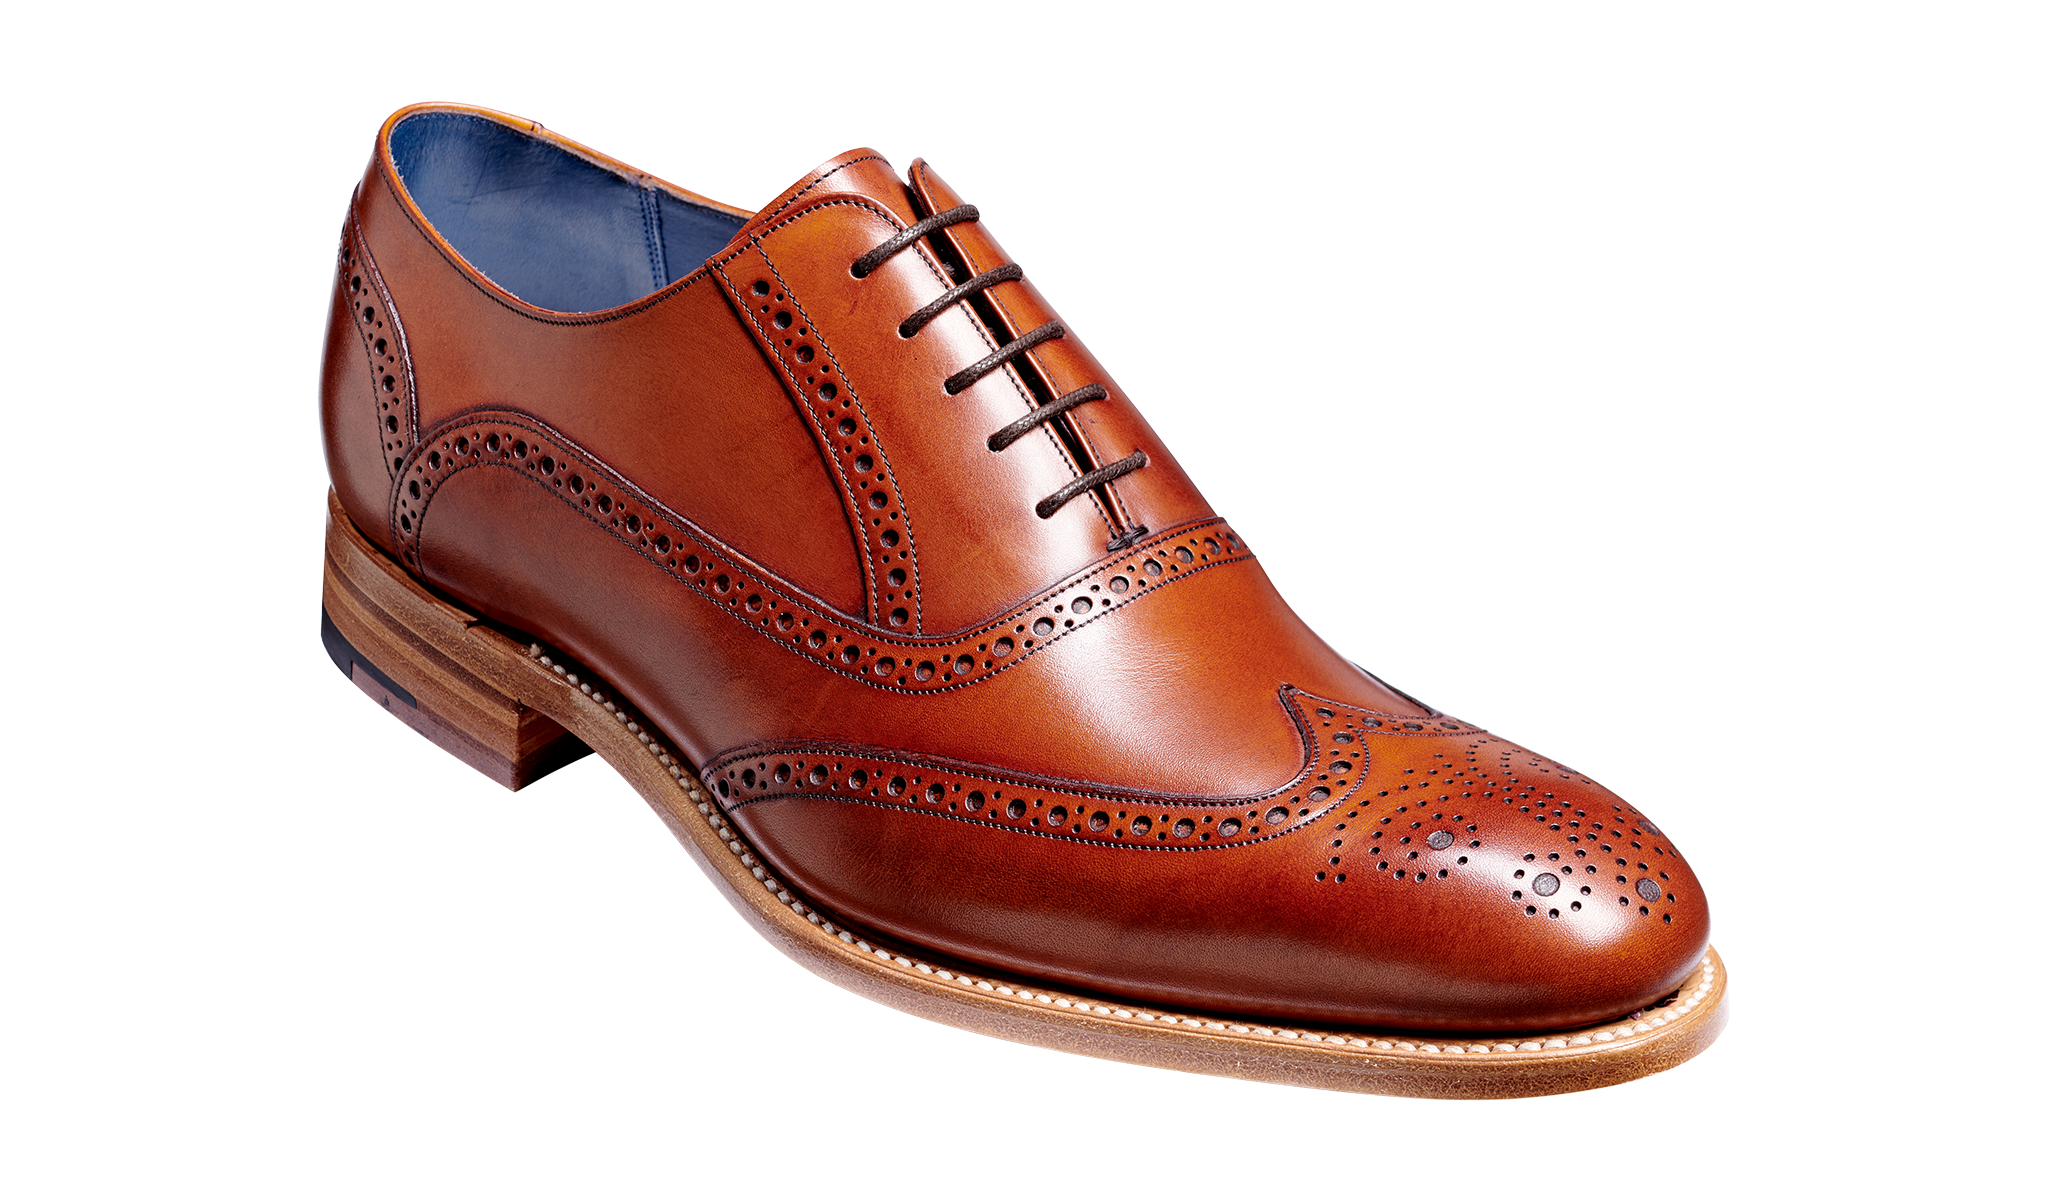 Valiant - Men's rosewood full brogue shoe by Barker